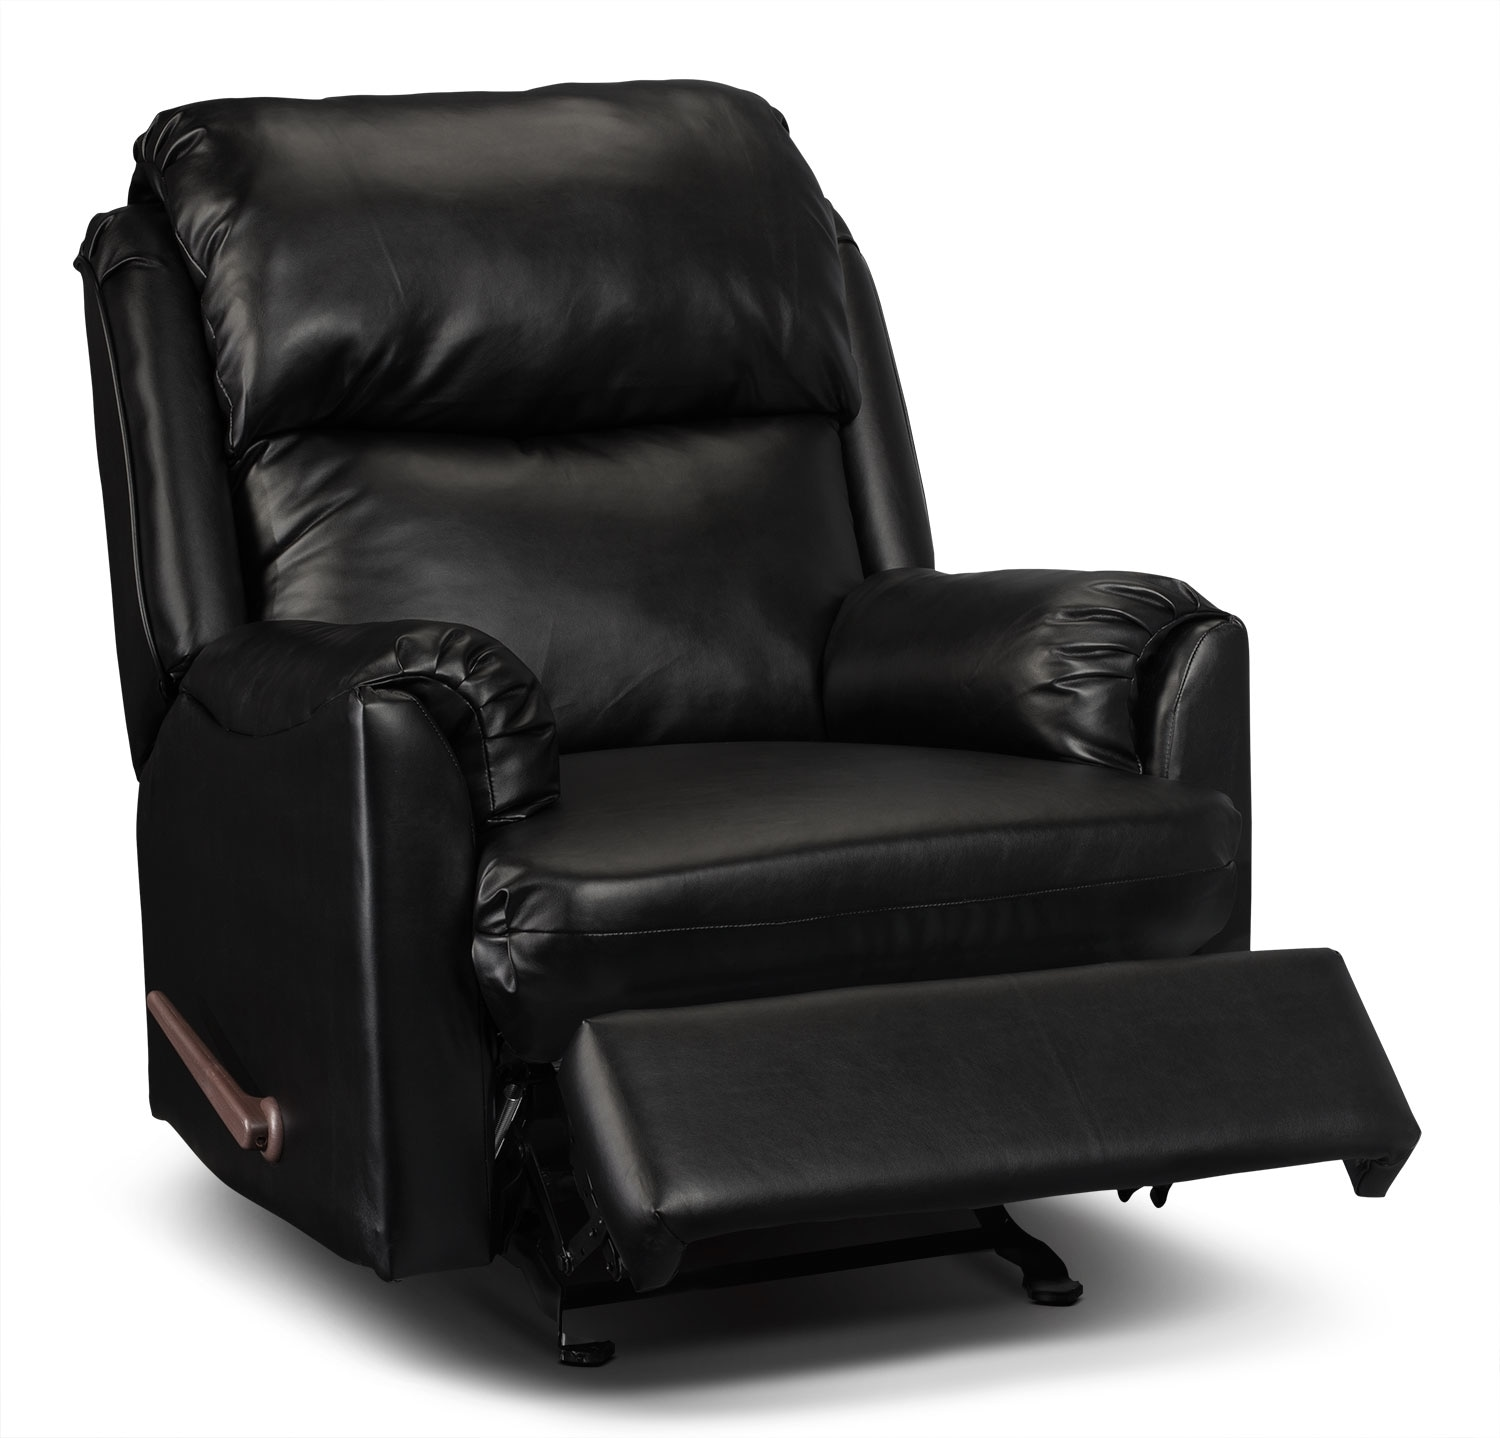 Drogba Faux Leather Power Recliner - Black